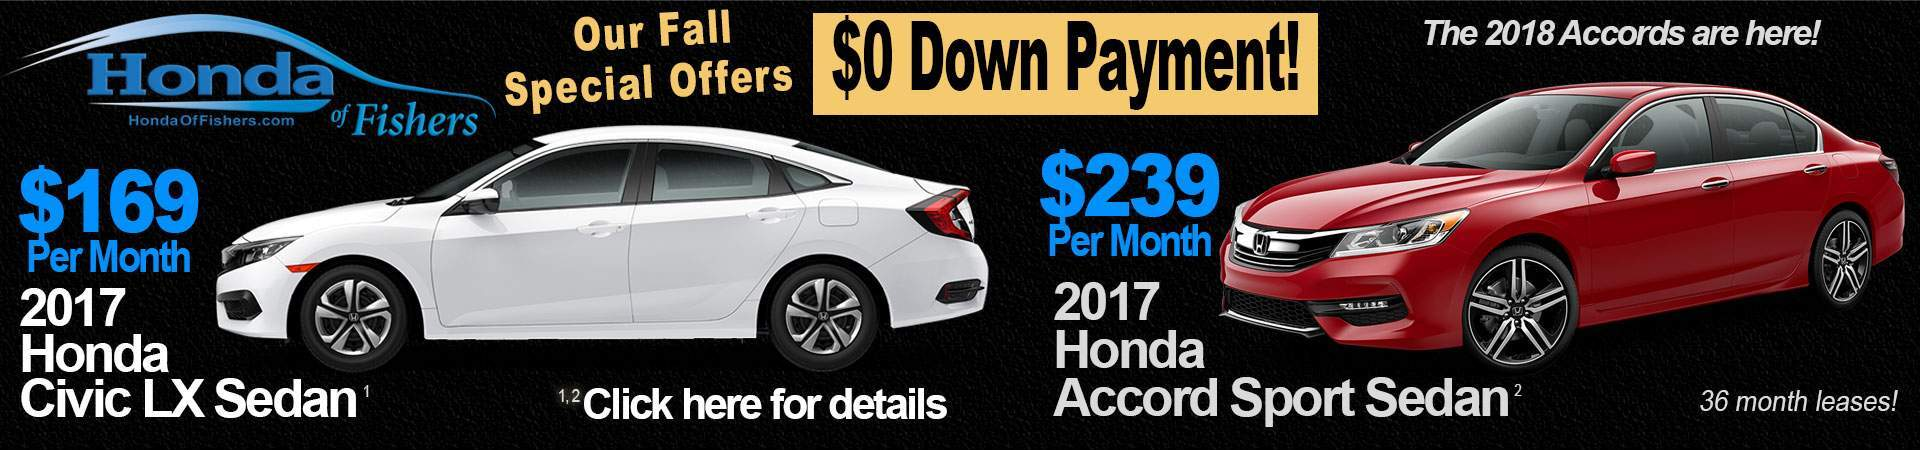 Web specials at Honda of Fishers